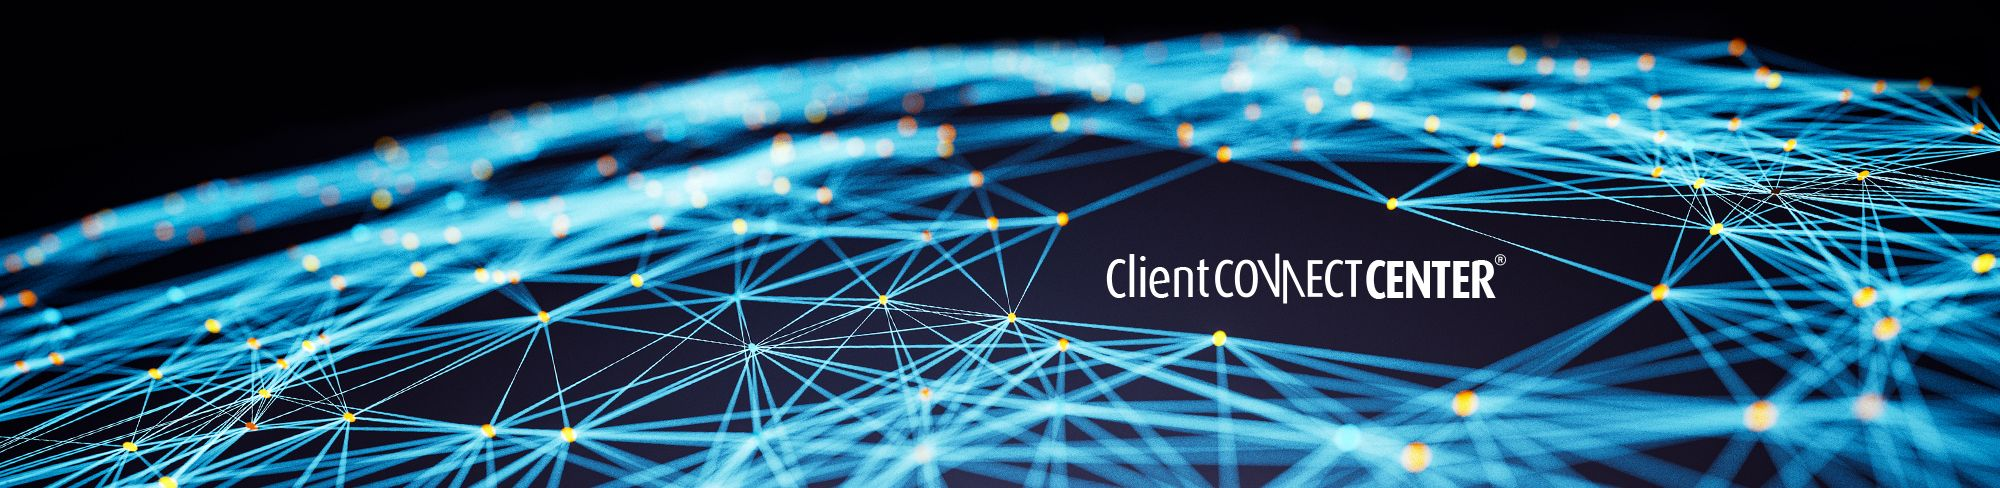 Datamax ClientCONNECT Center